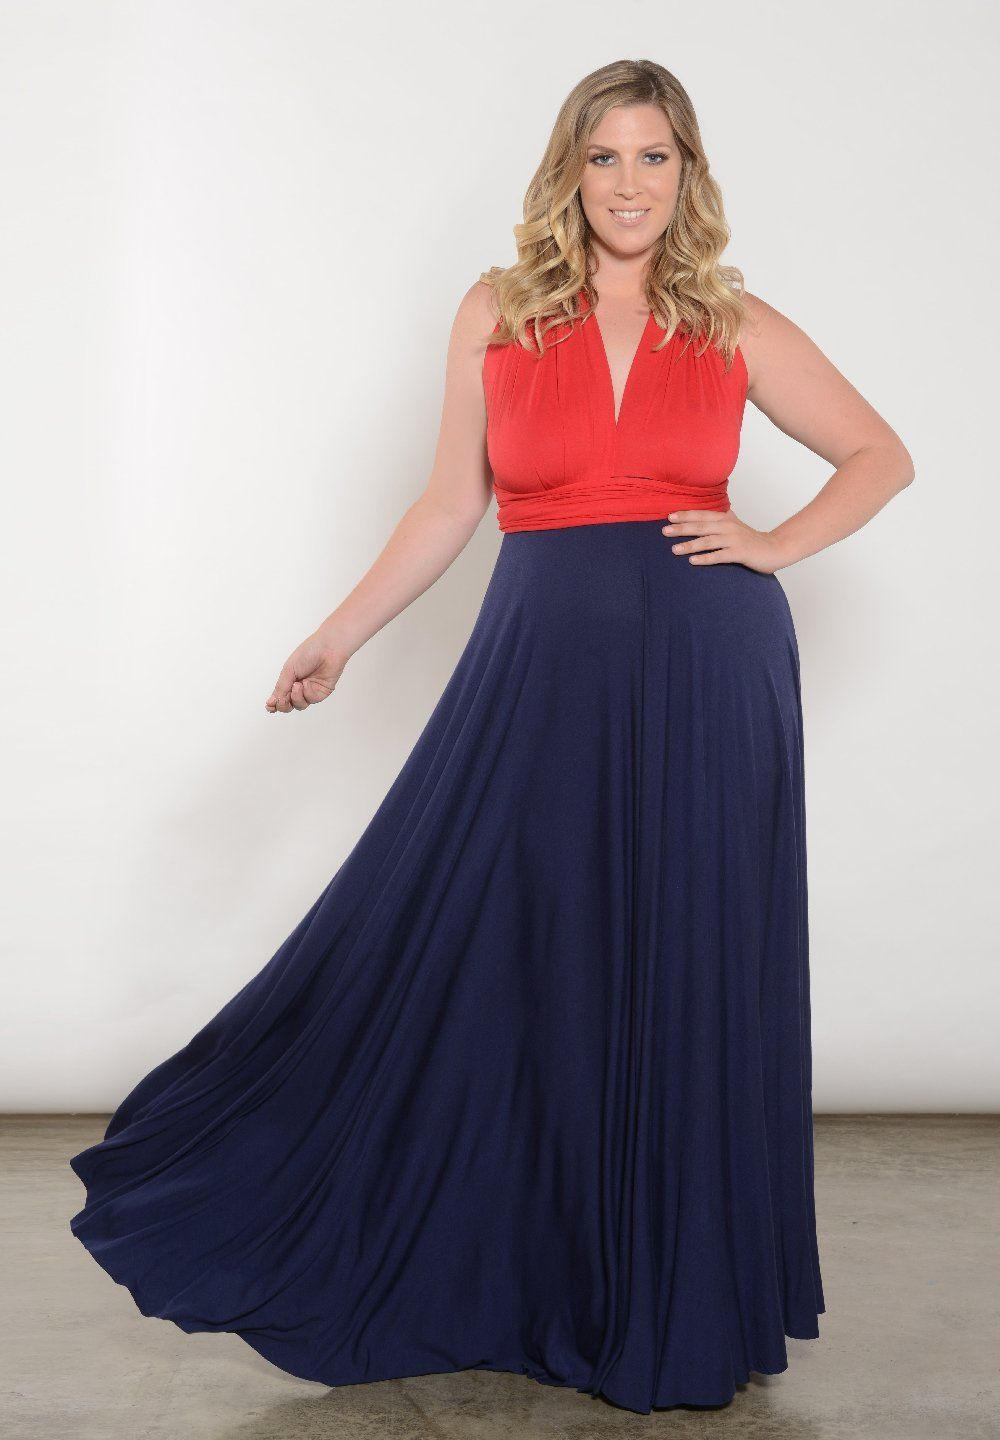 Women S Plus Size Dress Eternity Convertible Duo Maxi Dress In Red And Blue Swak Designs Best Plus Size Dresses Plus Size Dresses Plus Size Maxi Dresses [ 1440 x 1000 Pixel ]